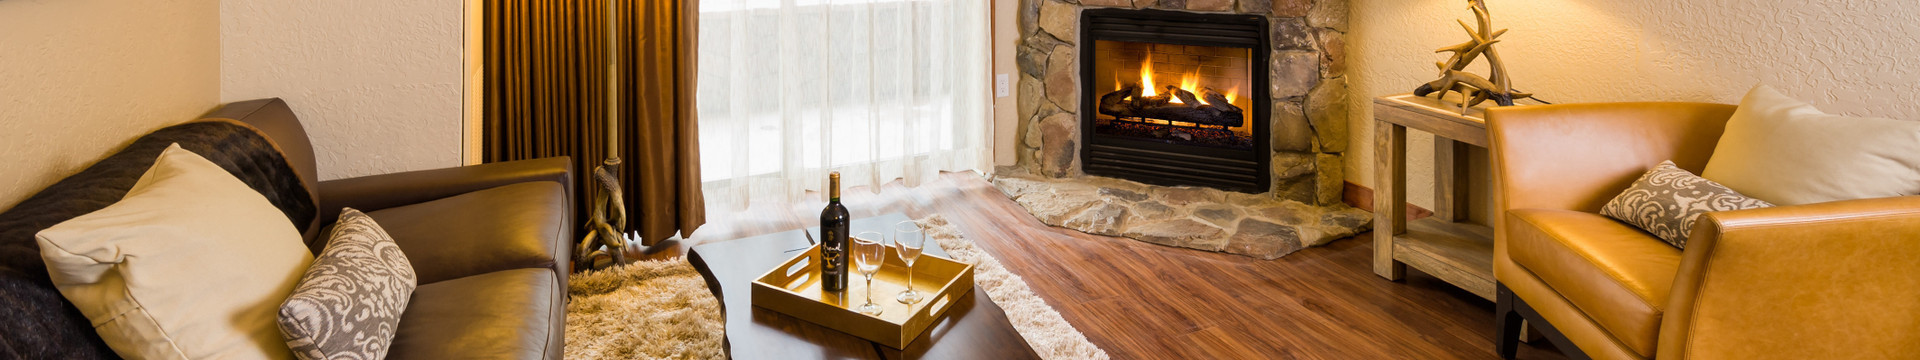 Accommodations at our Park City, Utah Hotel and Ski Resort | Canyons Golf Course